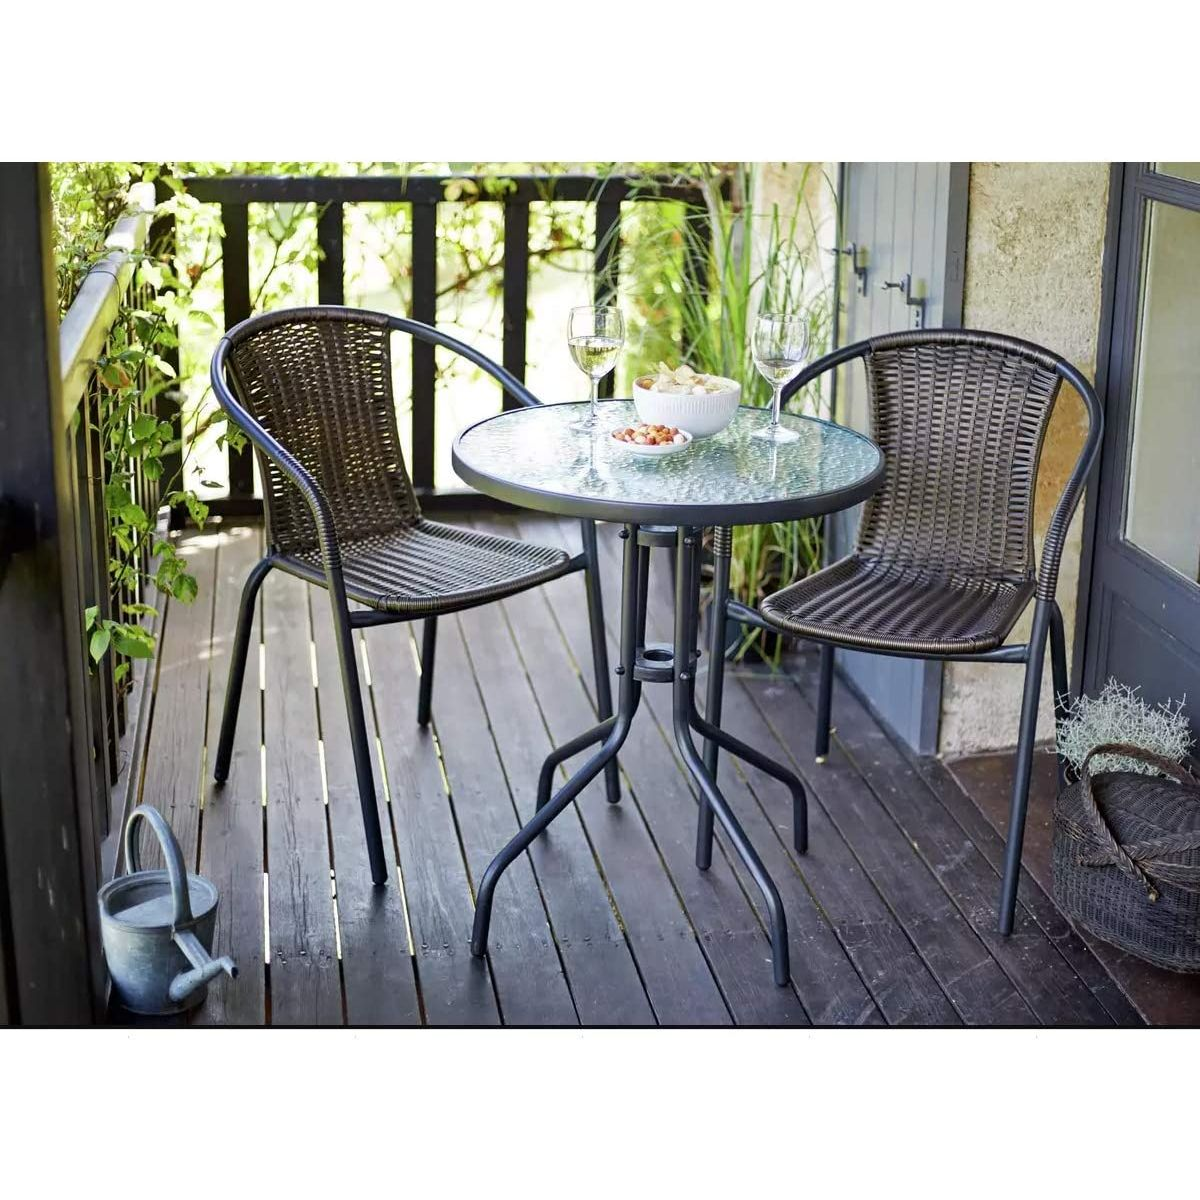 3 Piece Rattan Garden Patio Furniture Conservatory Glass Table 2 Chairs Set Uk Ebay